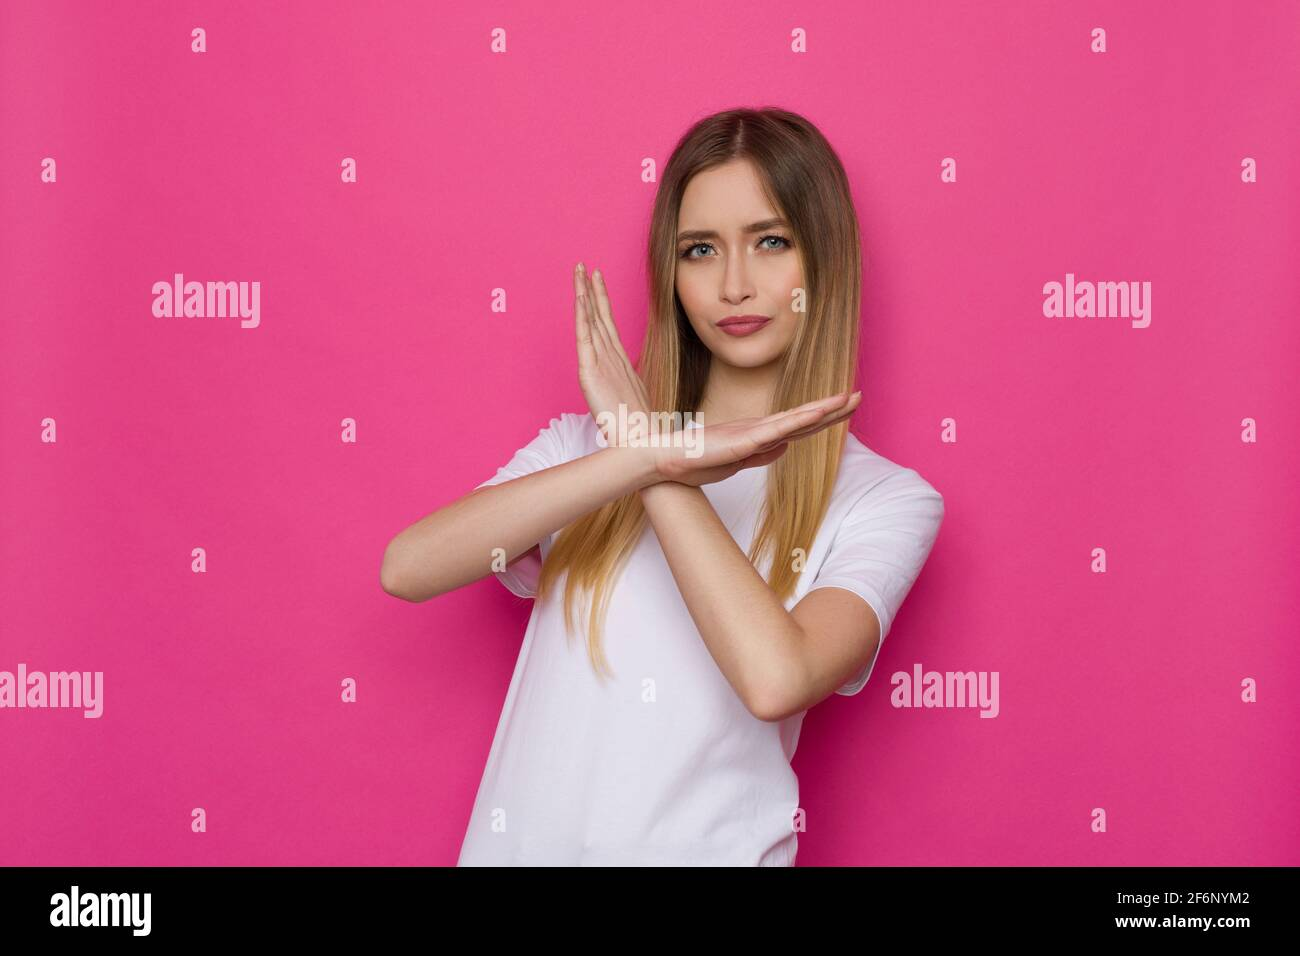 Confident young woman is showing NO sign with crossed hands. Waist up studio shot on pink background. Stock Photo